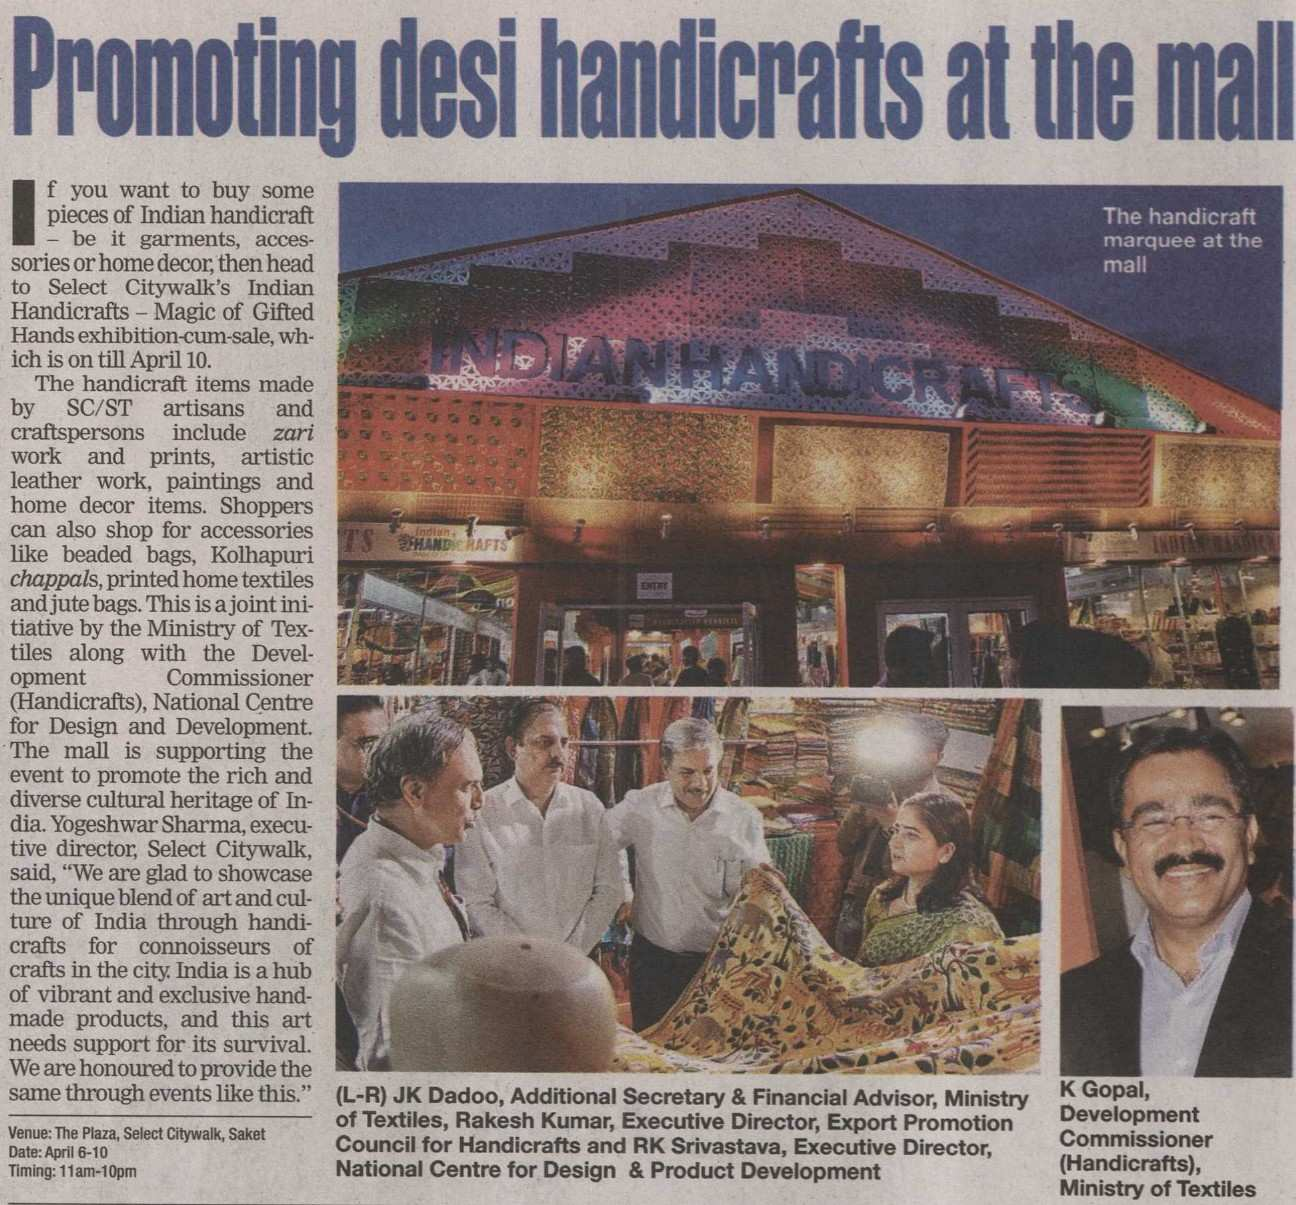 Promoting desi handicraftat the mall